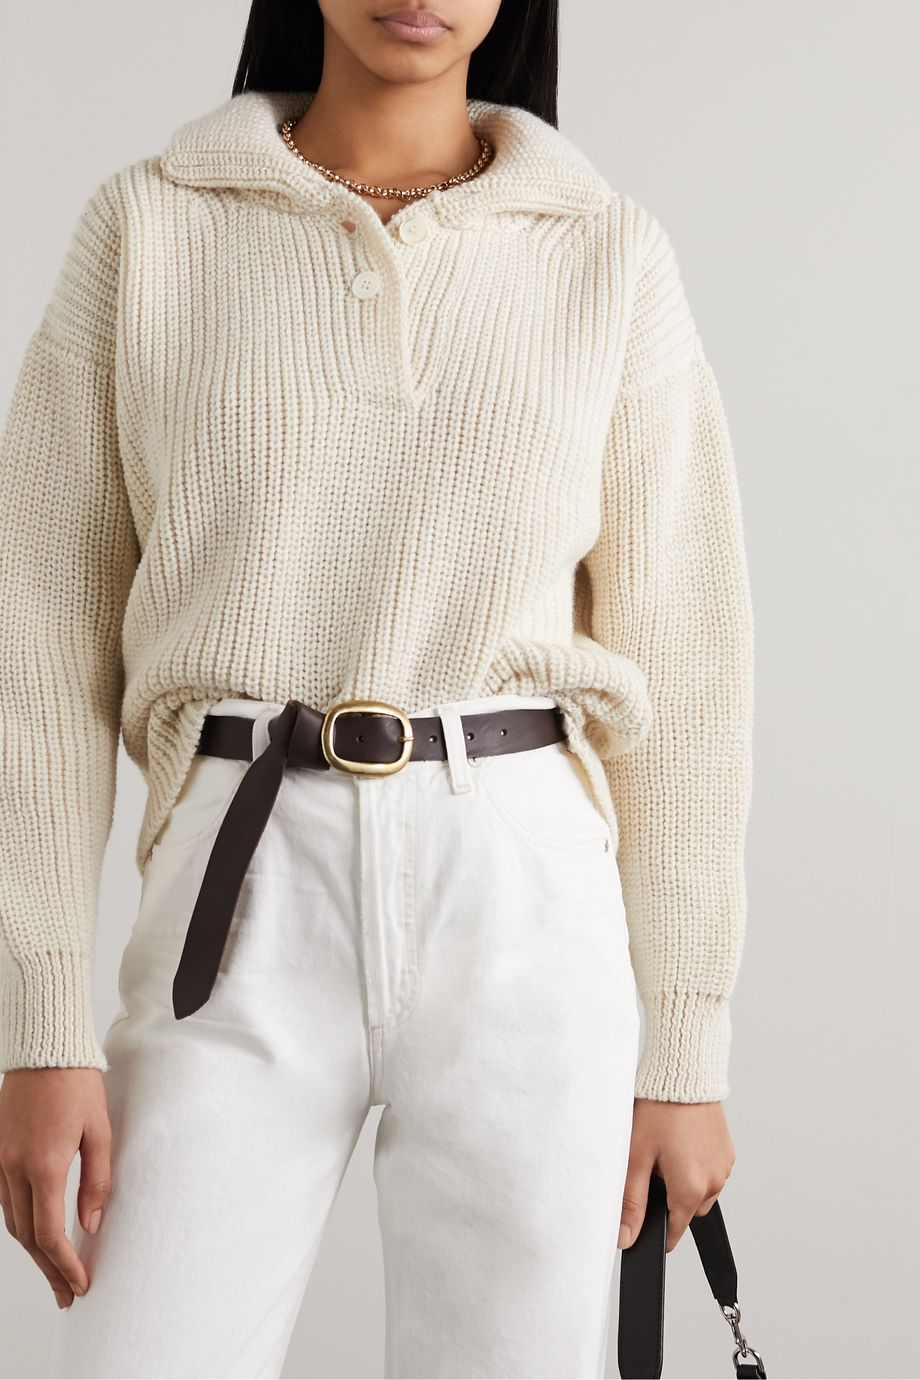 Black & Brown + NET SUSTAIN Harper leather belt